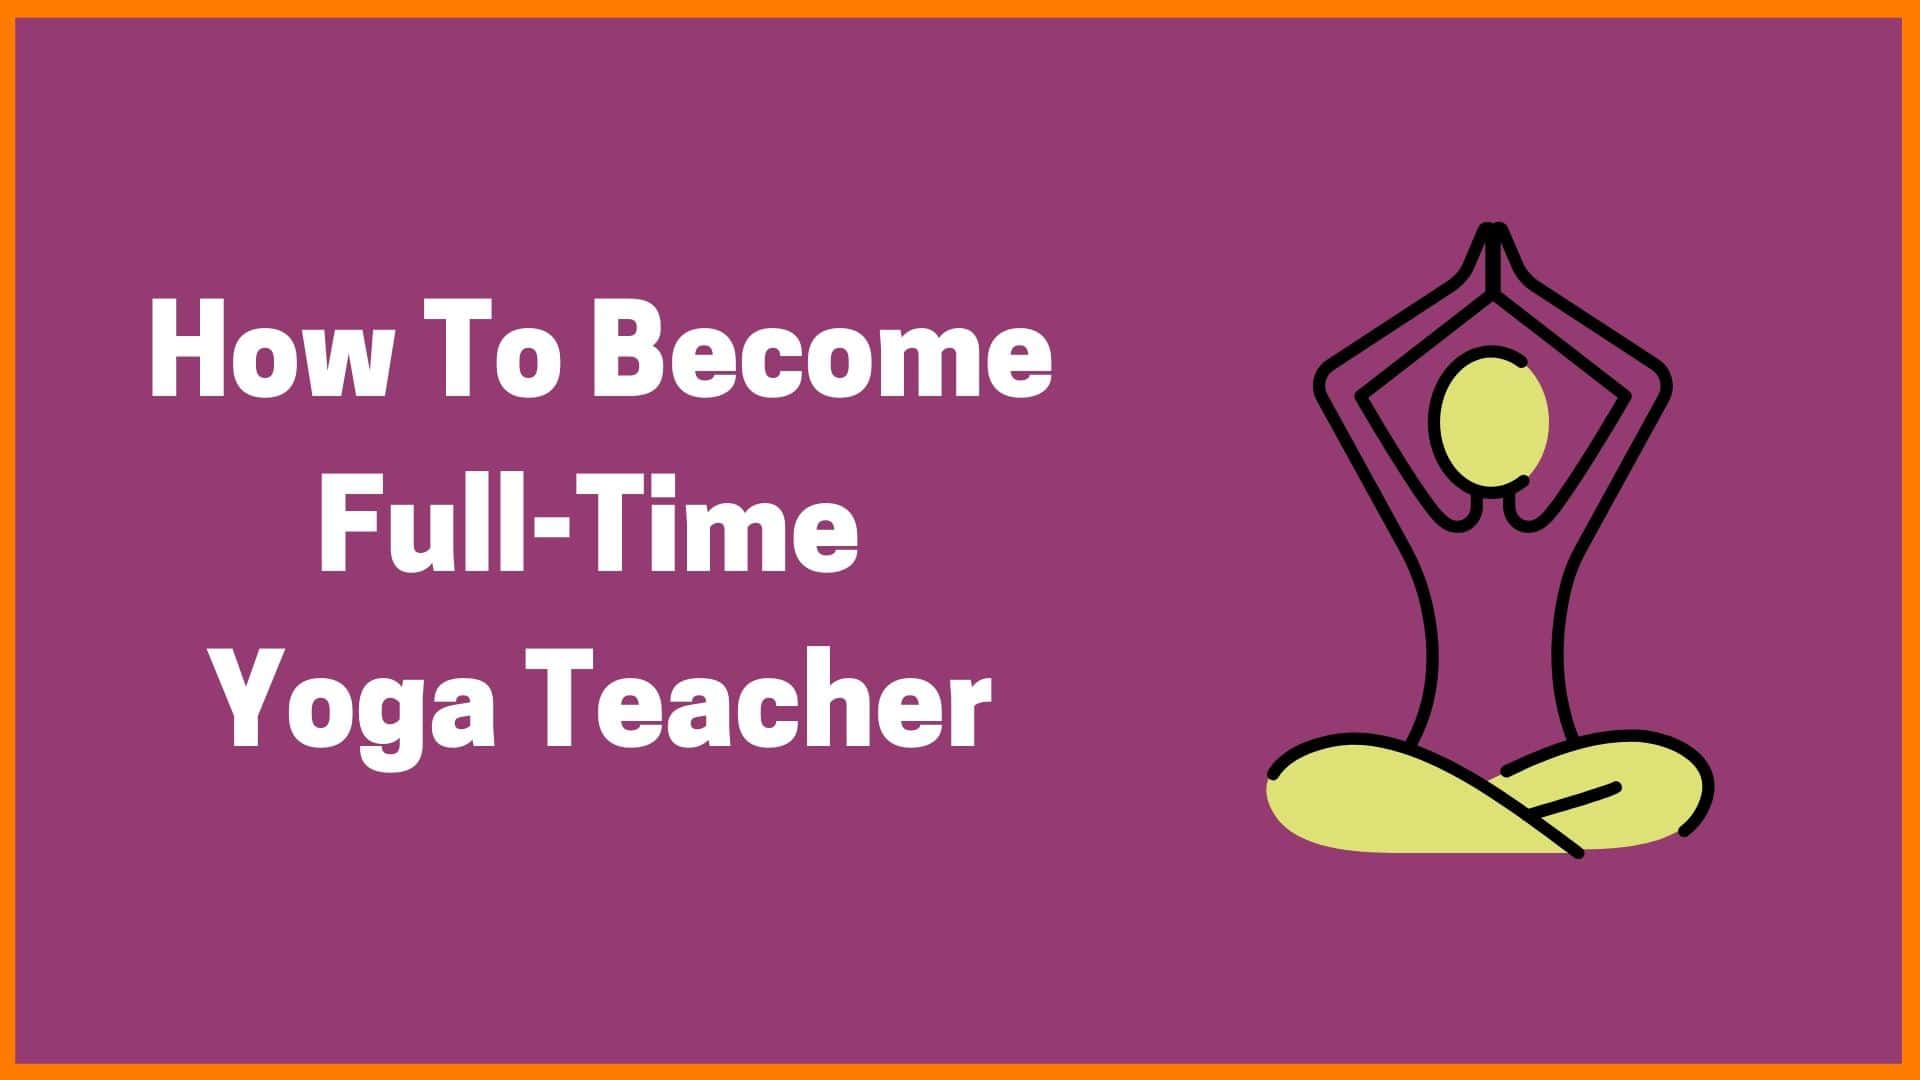 How To Become A Full-Time Yoga Teacher